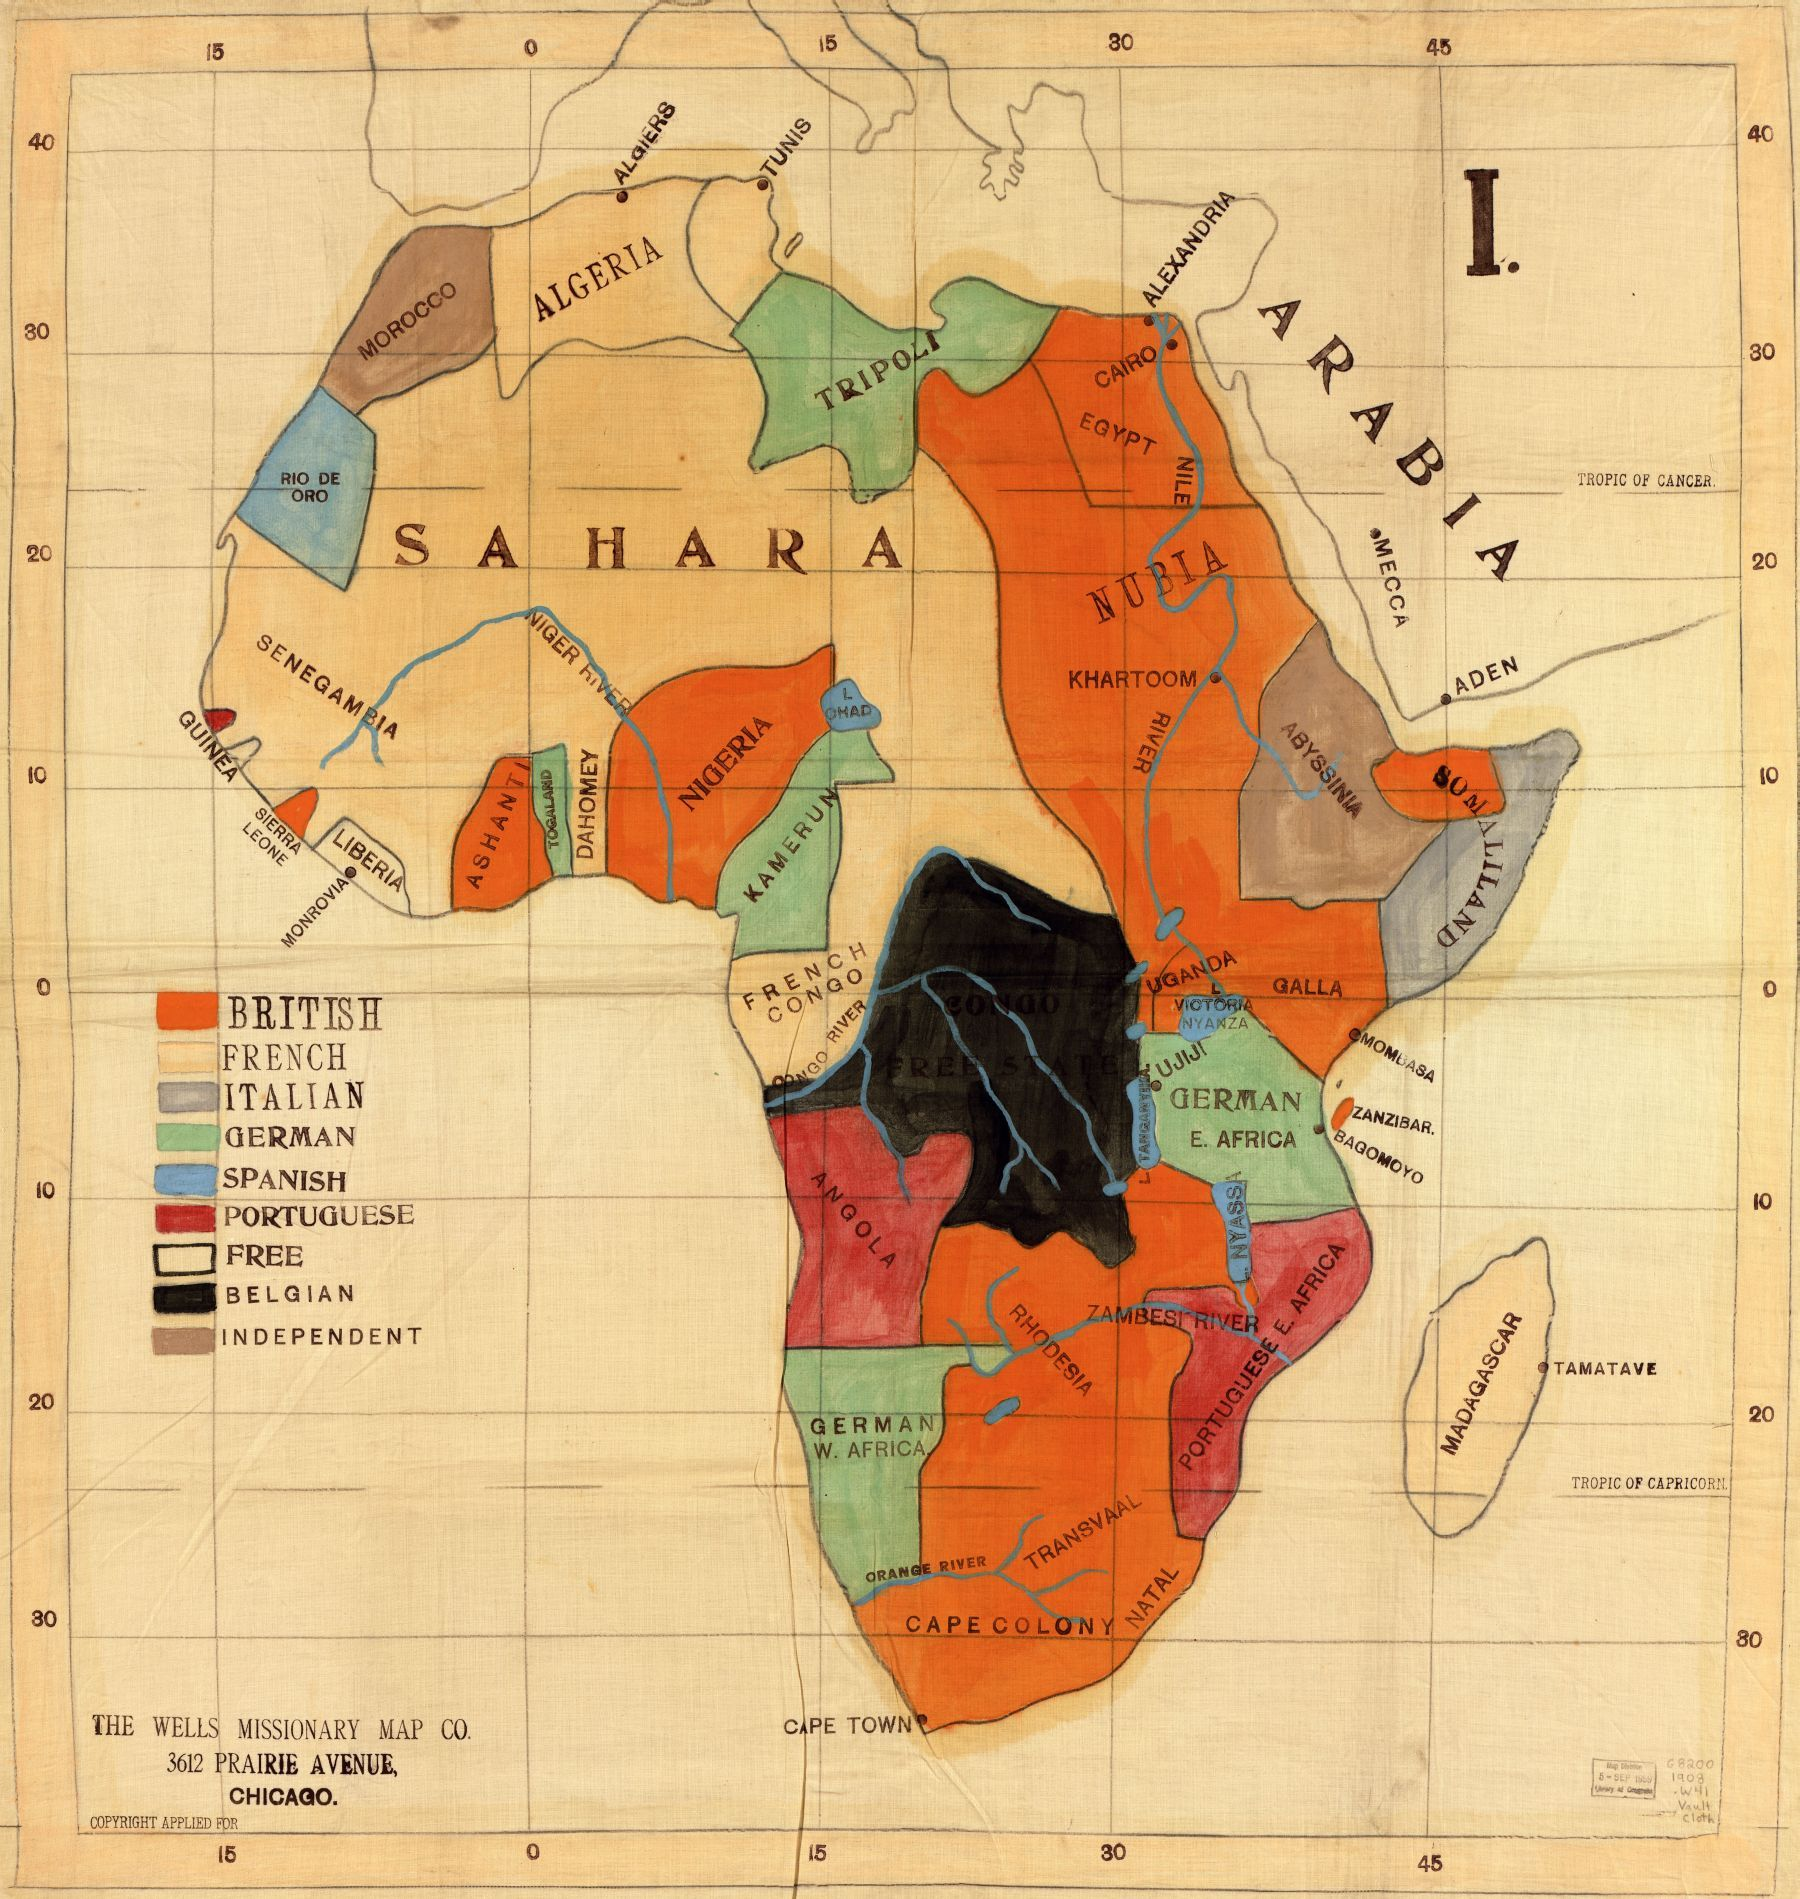 a history of the european mission to africa Africa occupies an important place in the history of monasticism, since egypt was an early site in which monastic life flourished the christian anchoritic life can be dated to the end of the third century.